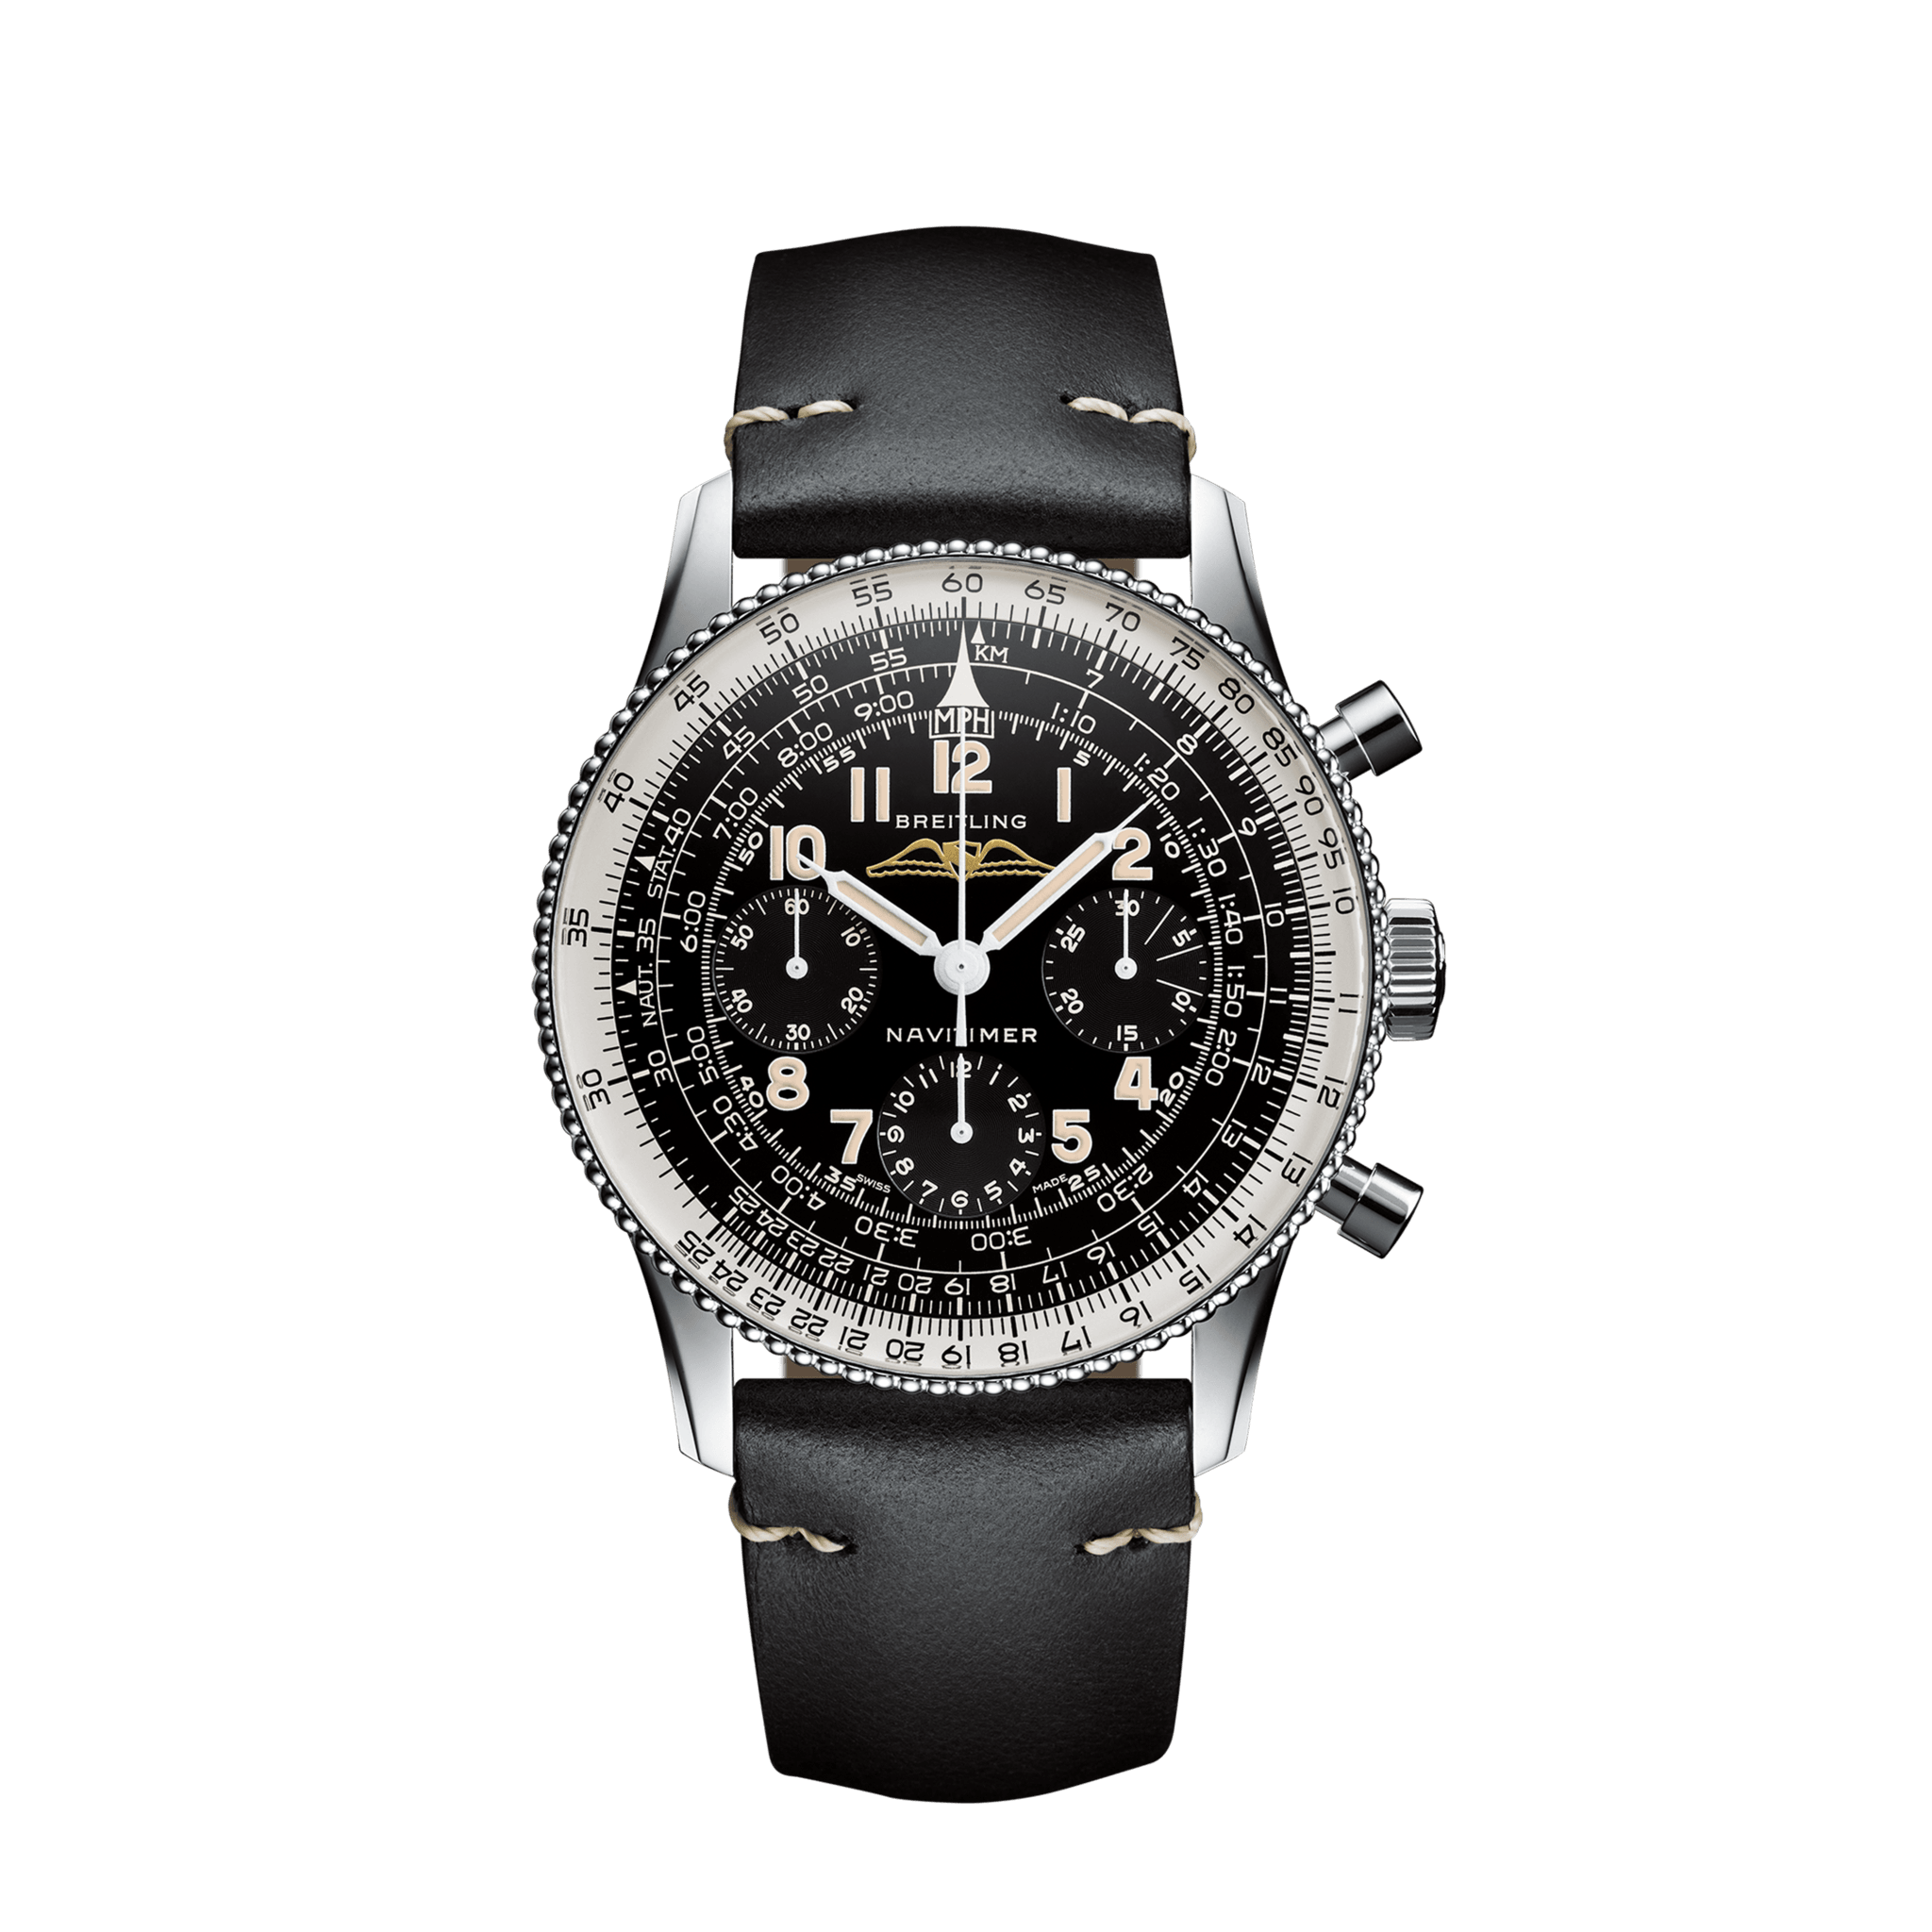 NAVITIMER, CHRONOGRAPH WATCHES